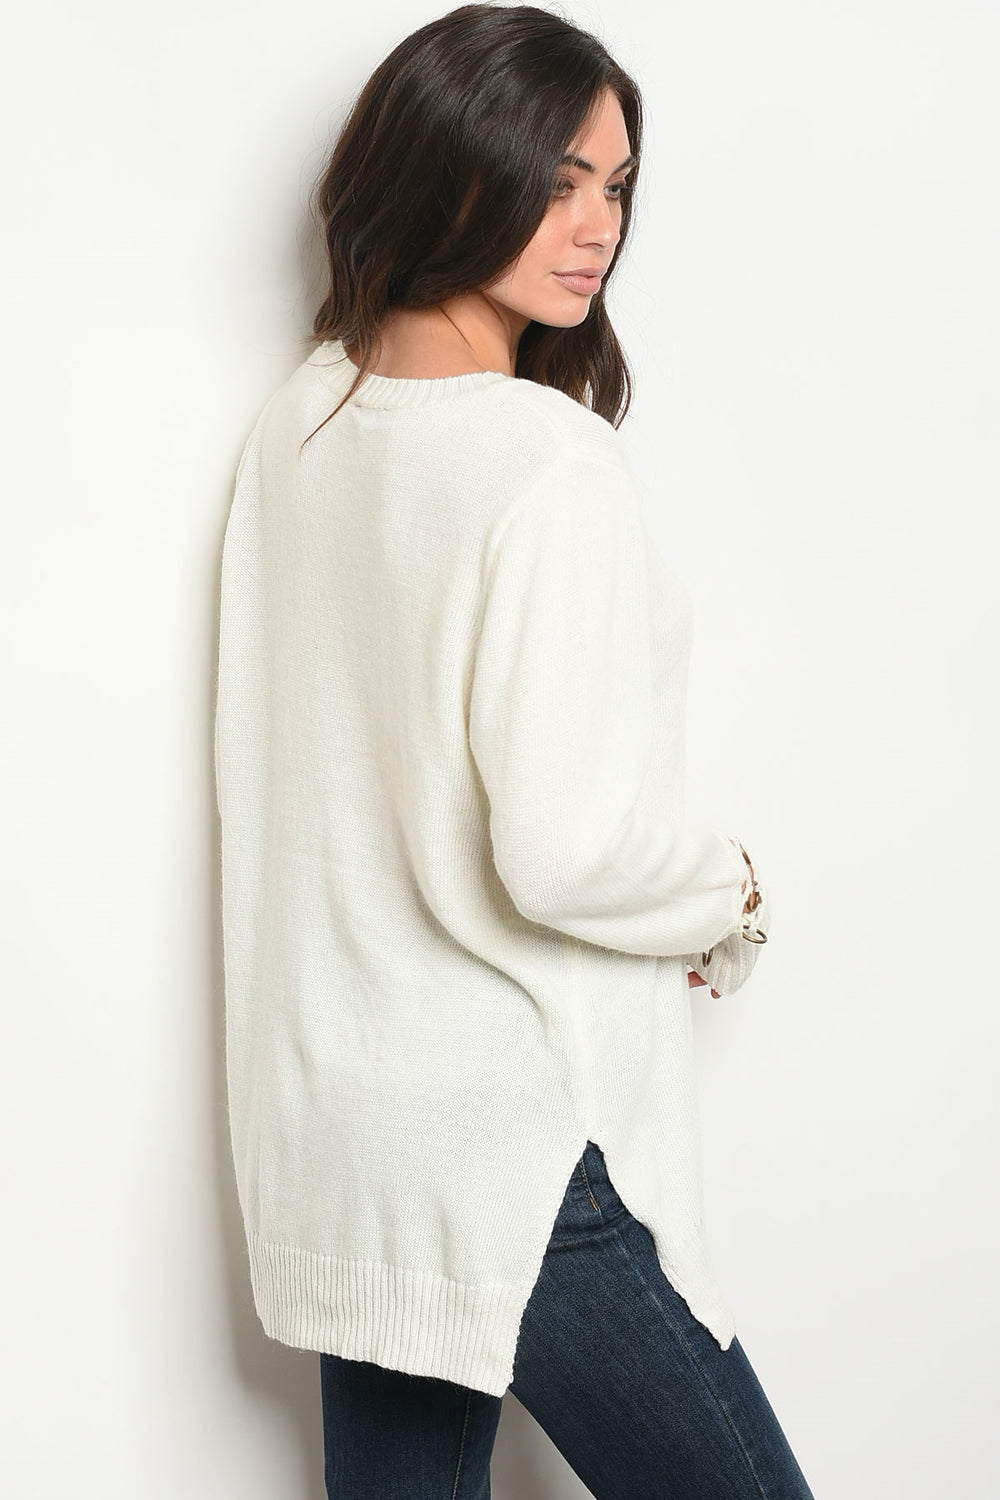 Long Sleeve Ivory Knit Sweater Siin Bees